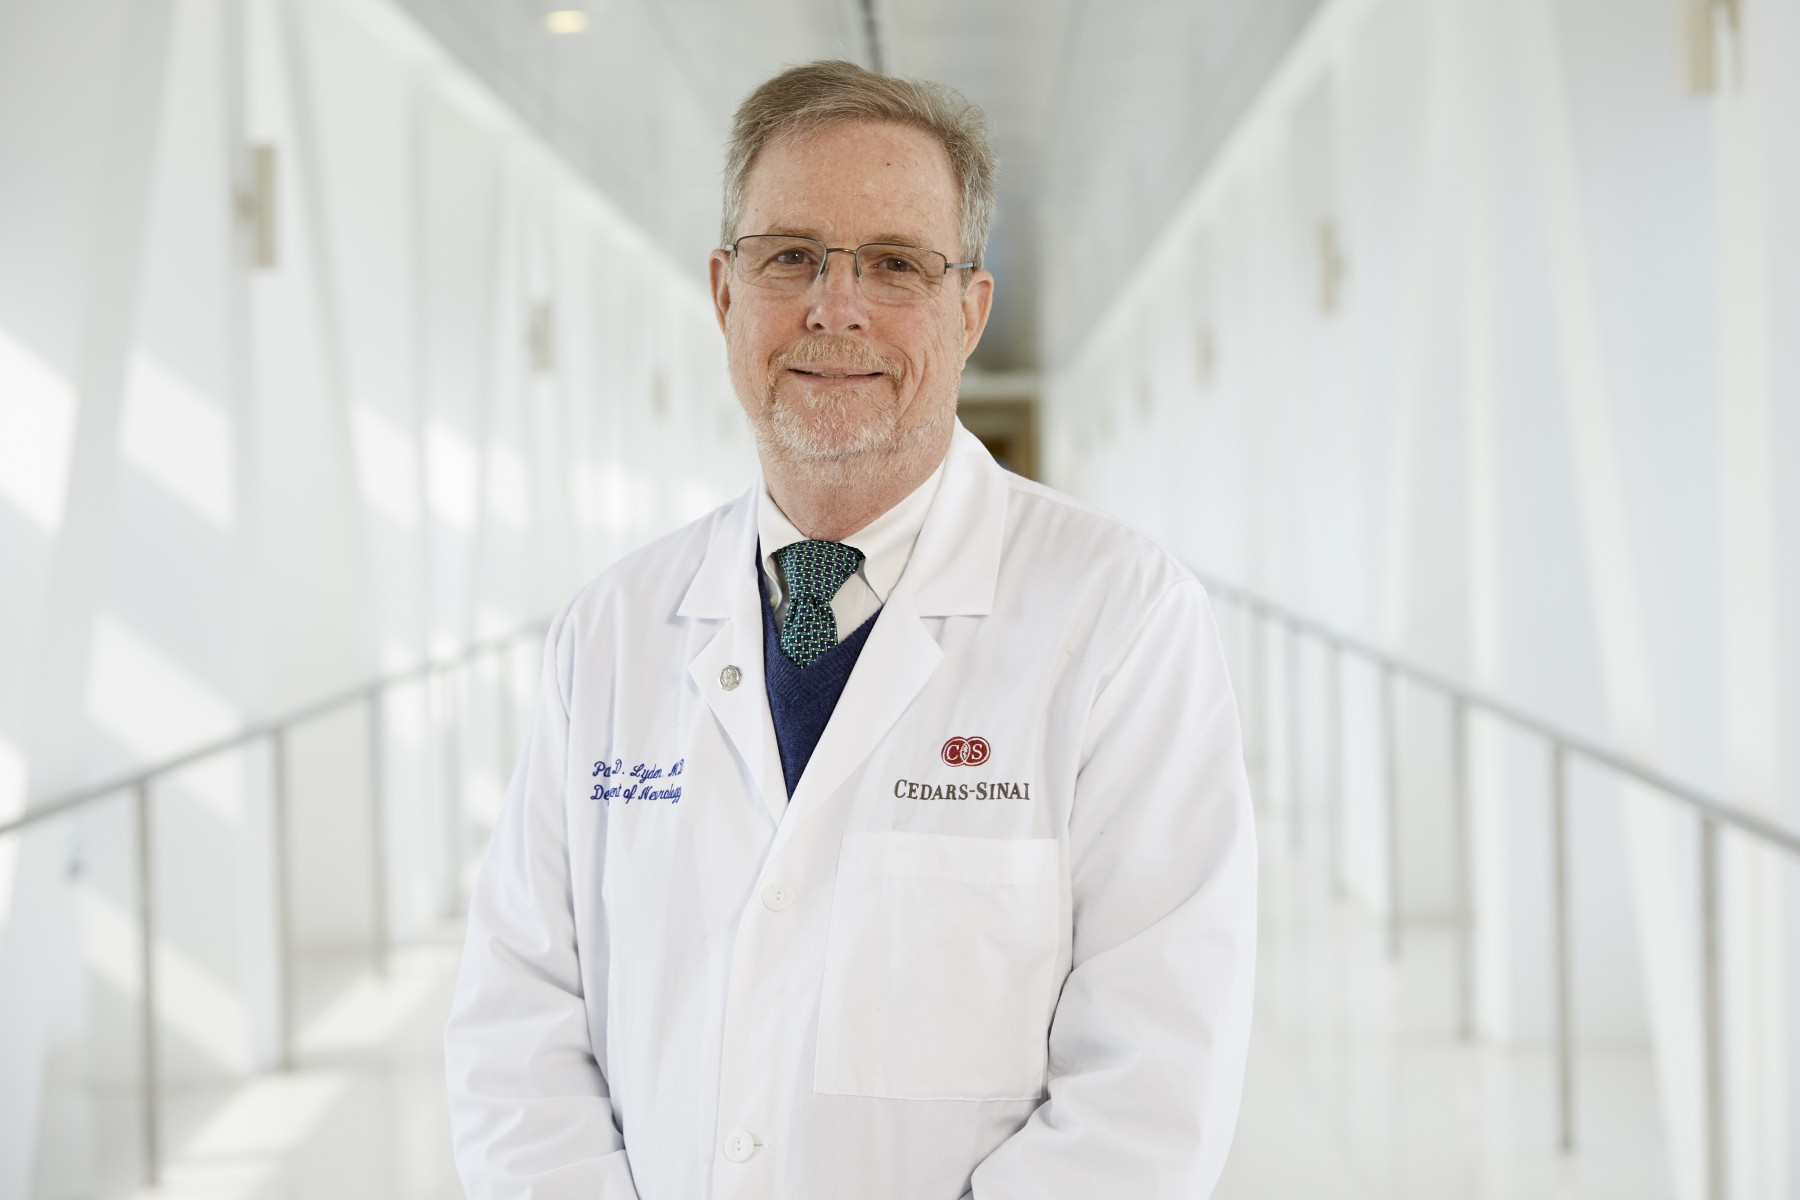 Patrick Lyden, MD, is leading a National Institutes of Health study about strokes. Photo by Cedars-Sinai.